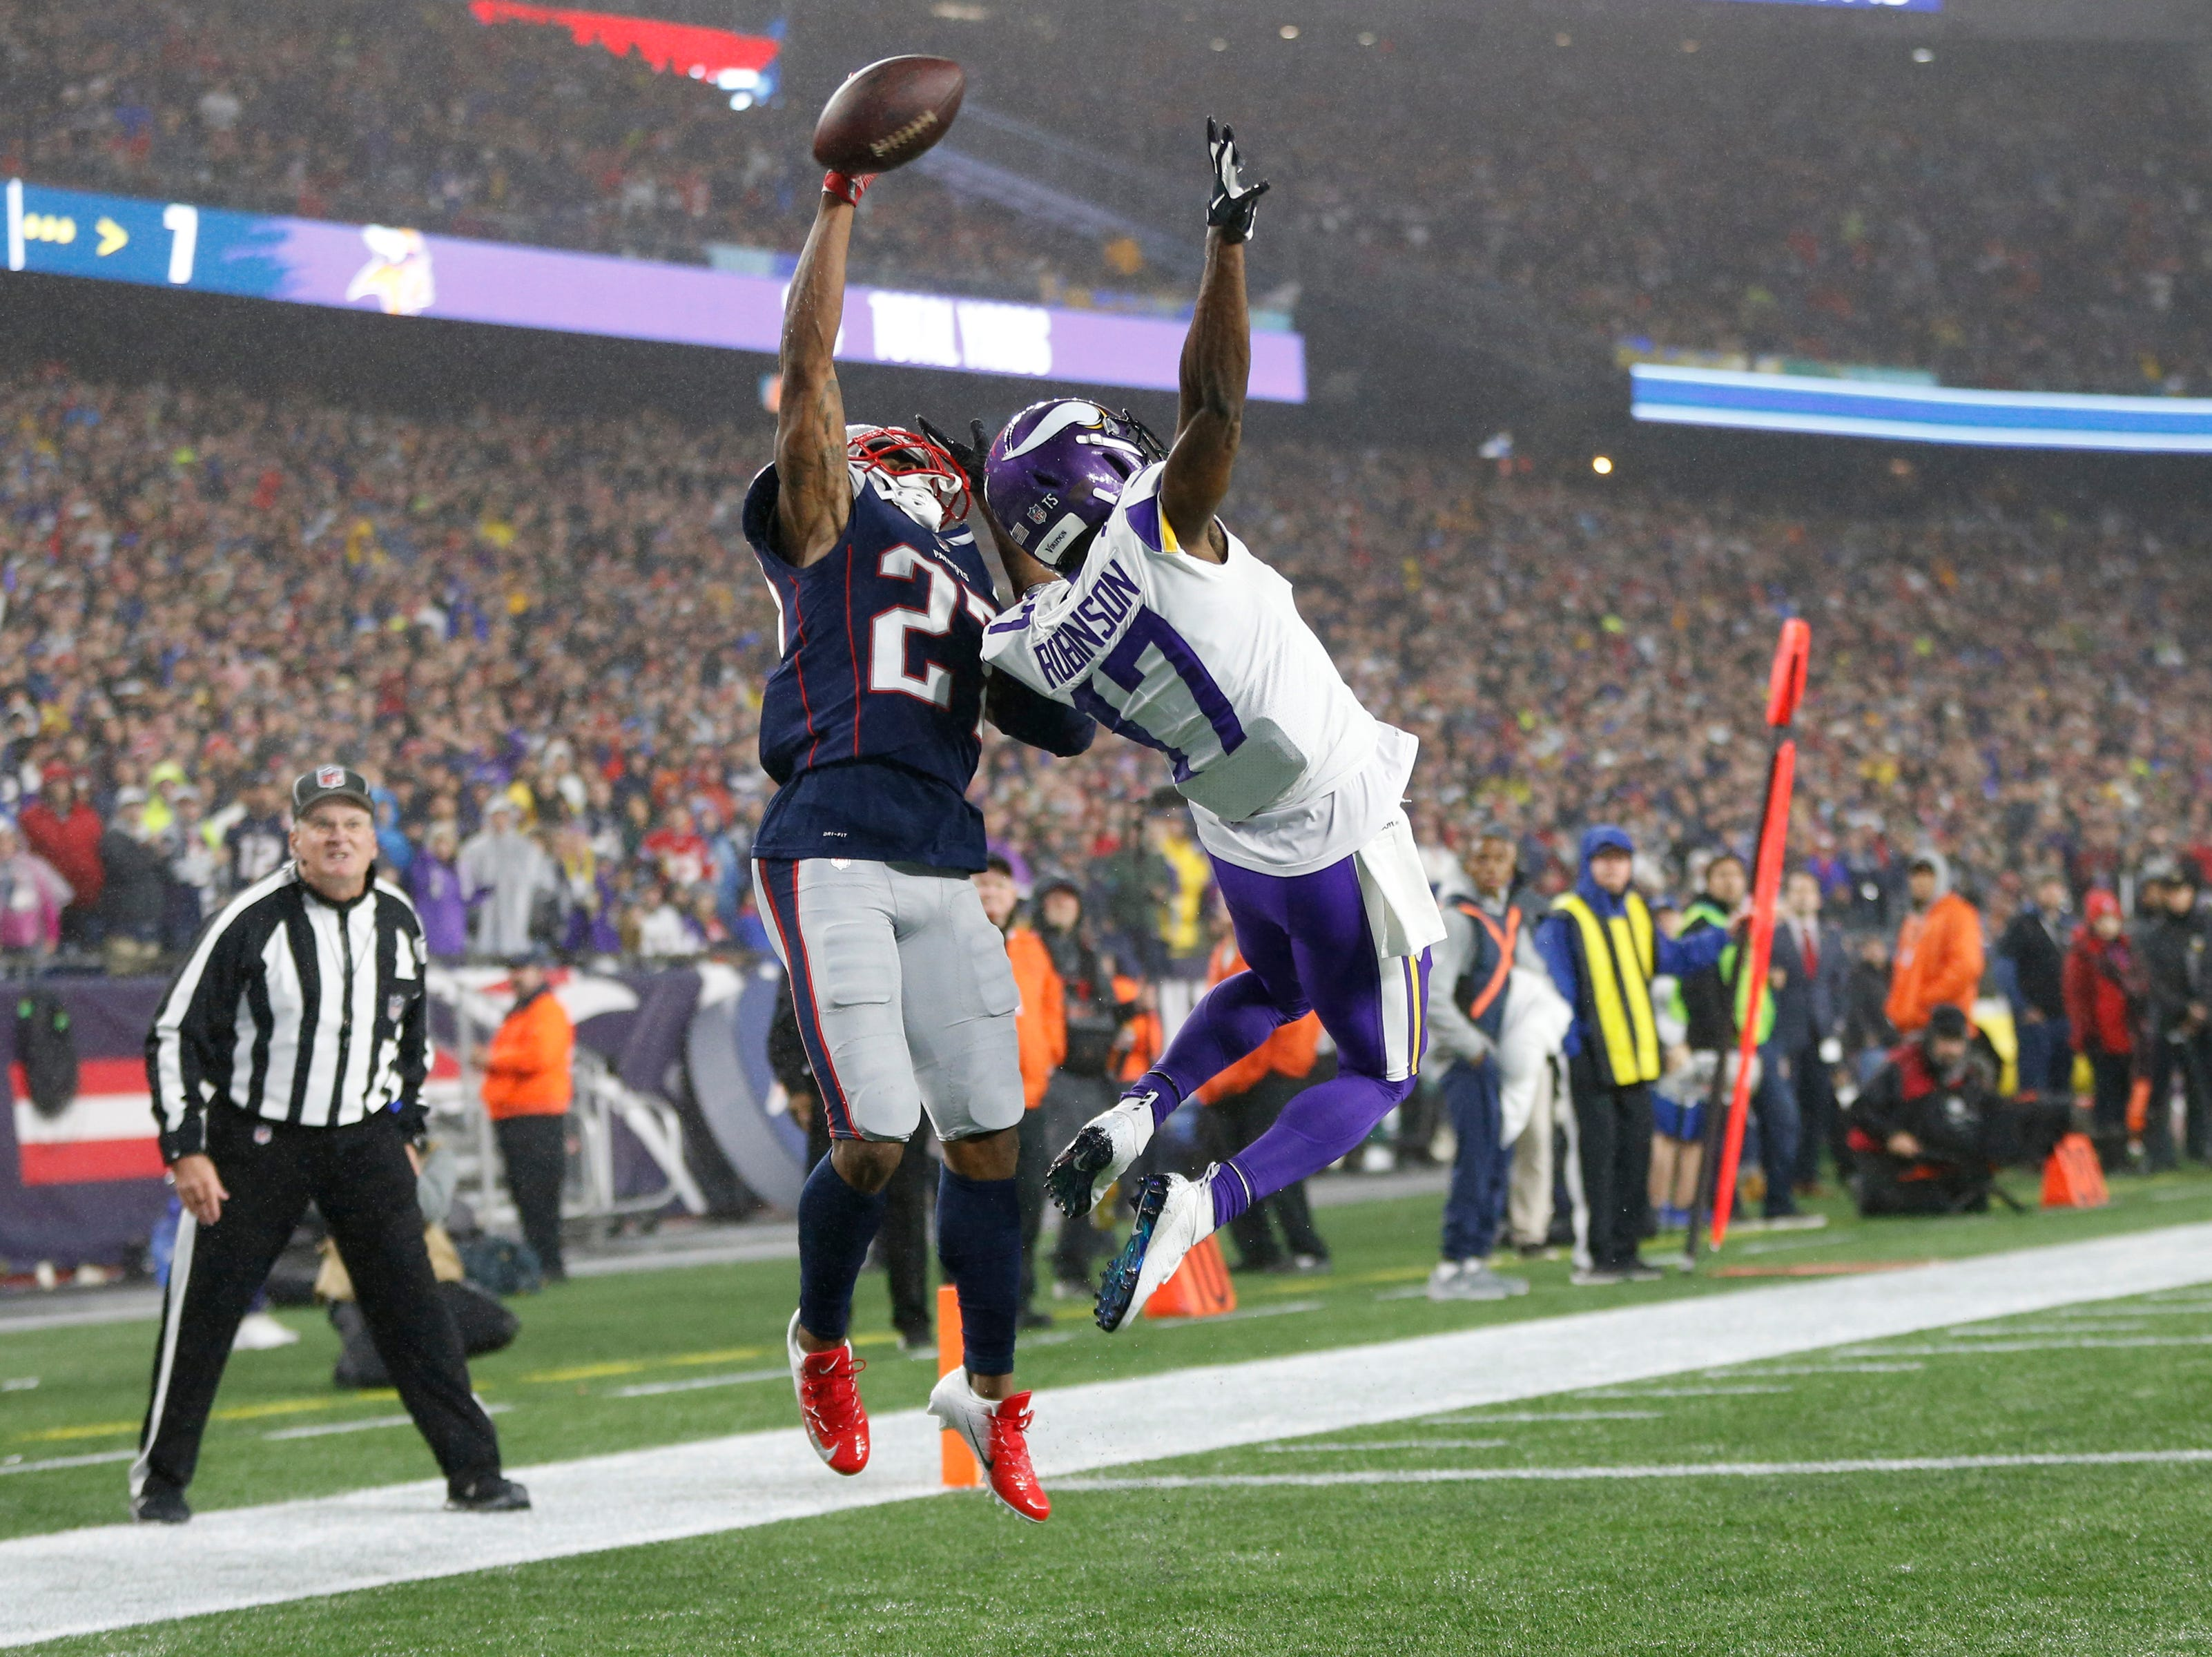 Patriots cornerback J.C. Jackson attempts to intercept a pass intended for Vikings wide receiver Aldrick Robinson during the third quarter.